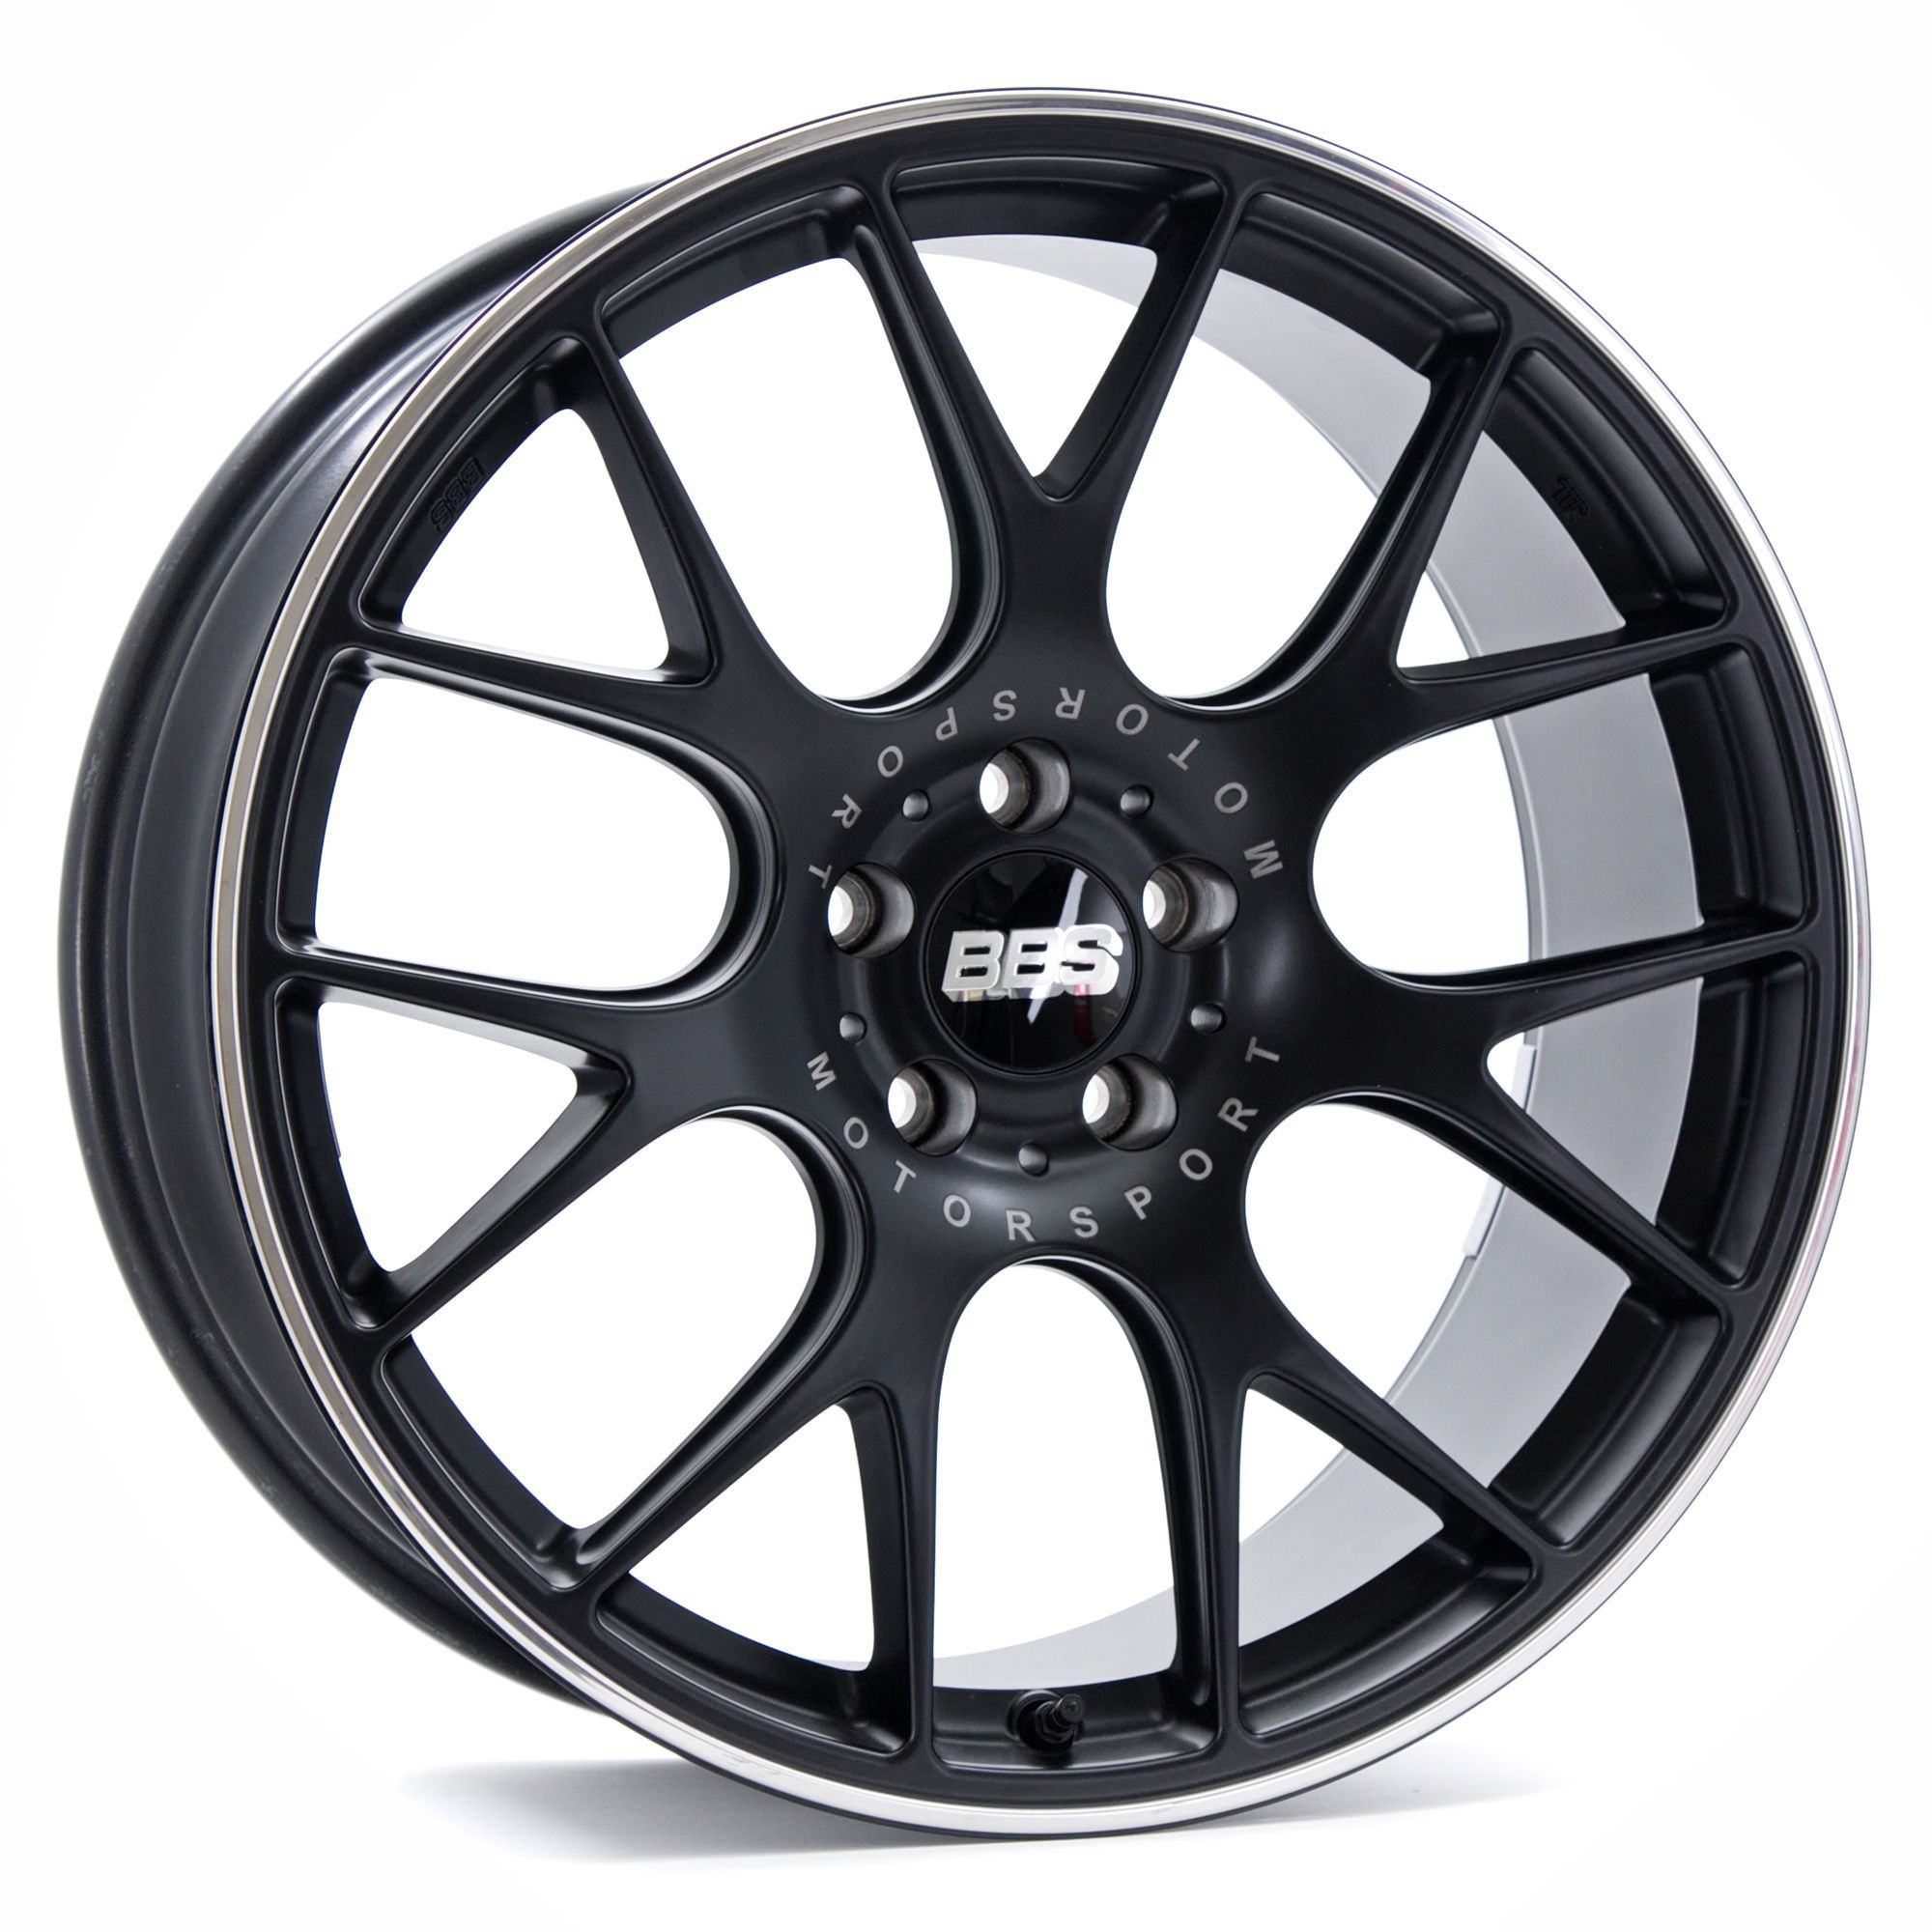 BBS CH R Matt Black rims Auto Accessories